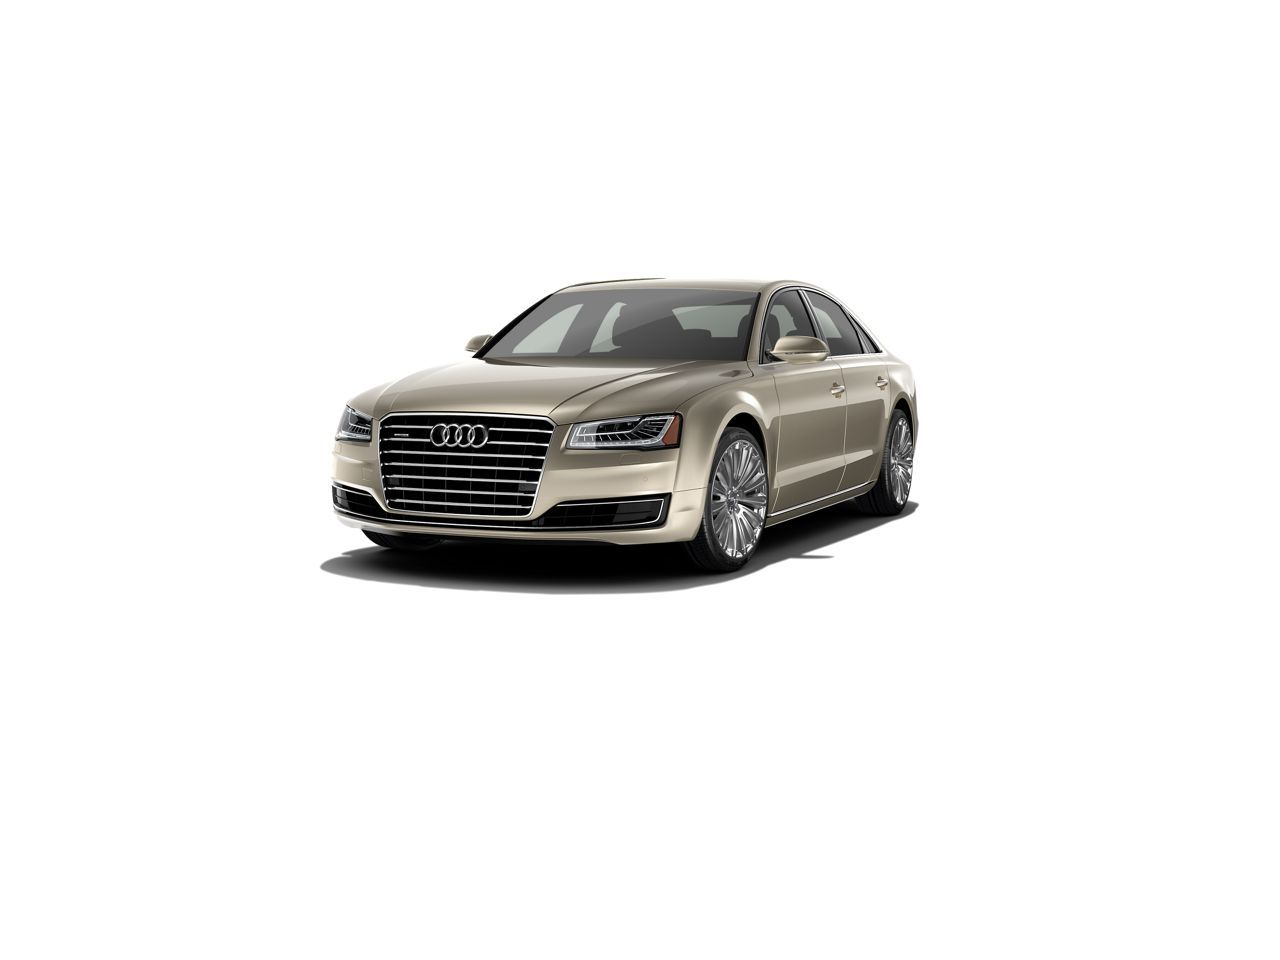 2021 Audi Build Your Own - th2021